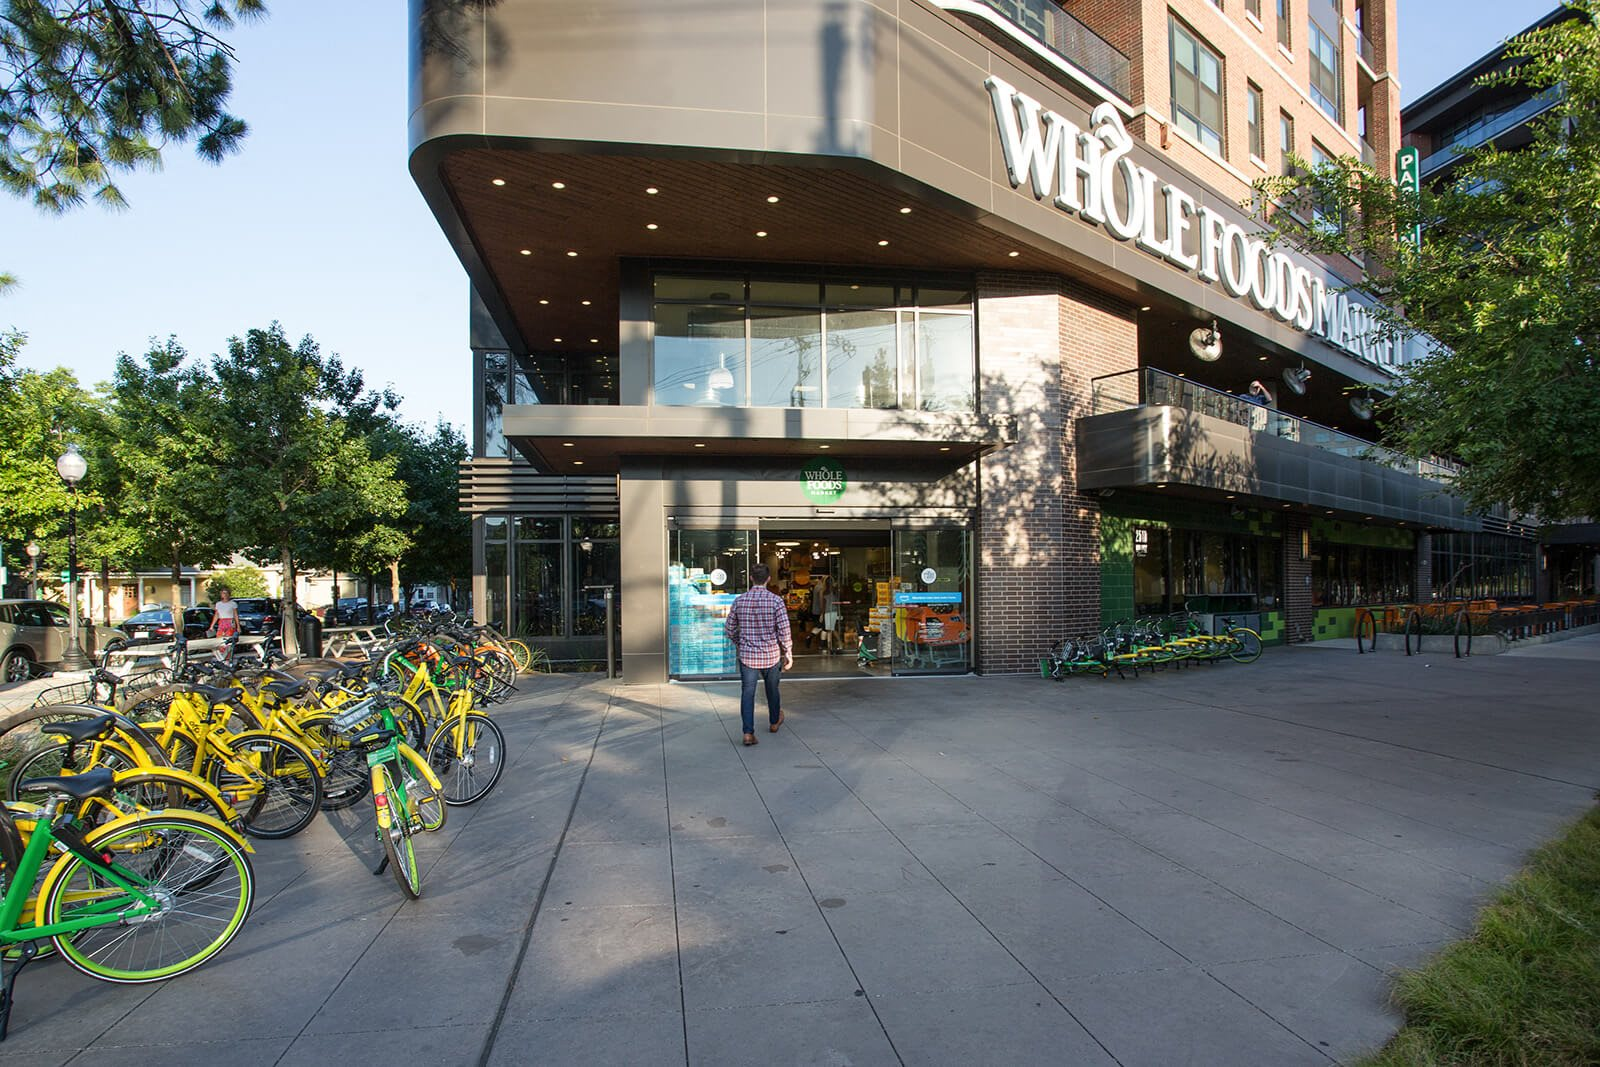 Whole Foods near Glass House by Windsor, Dallas, Texas